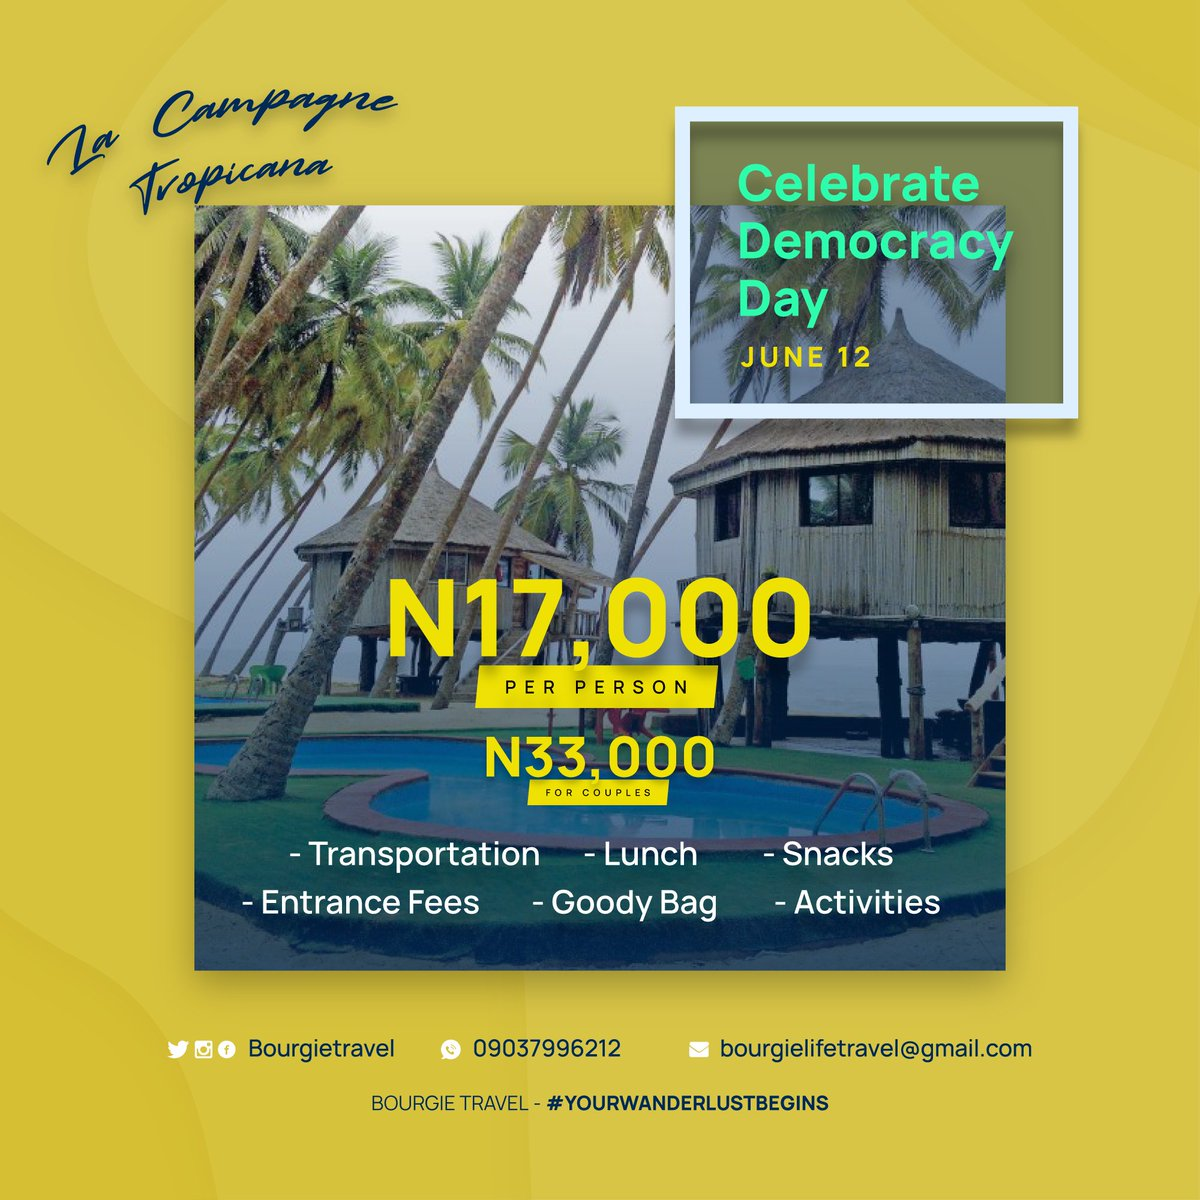 Happening this Wednesday, June 12 #DemocracyDay - Our La Campagne Tropicana hangout.  Want to chill by the beach and have fun with some really cool people? Send a DM now to be a part of this!  #YourWanderlustBegins #BourgieTravel<br>http://pic.twitter.com/anAeOkFtyQ